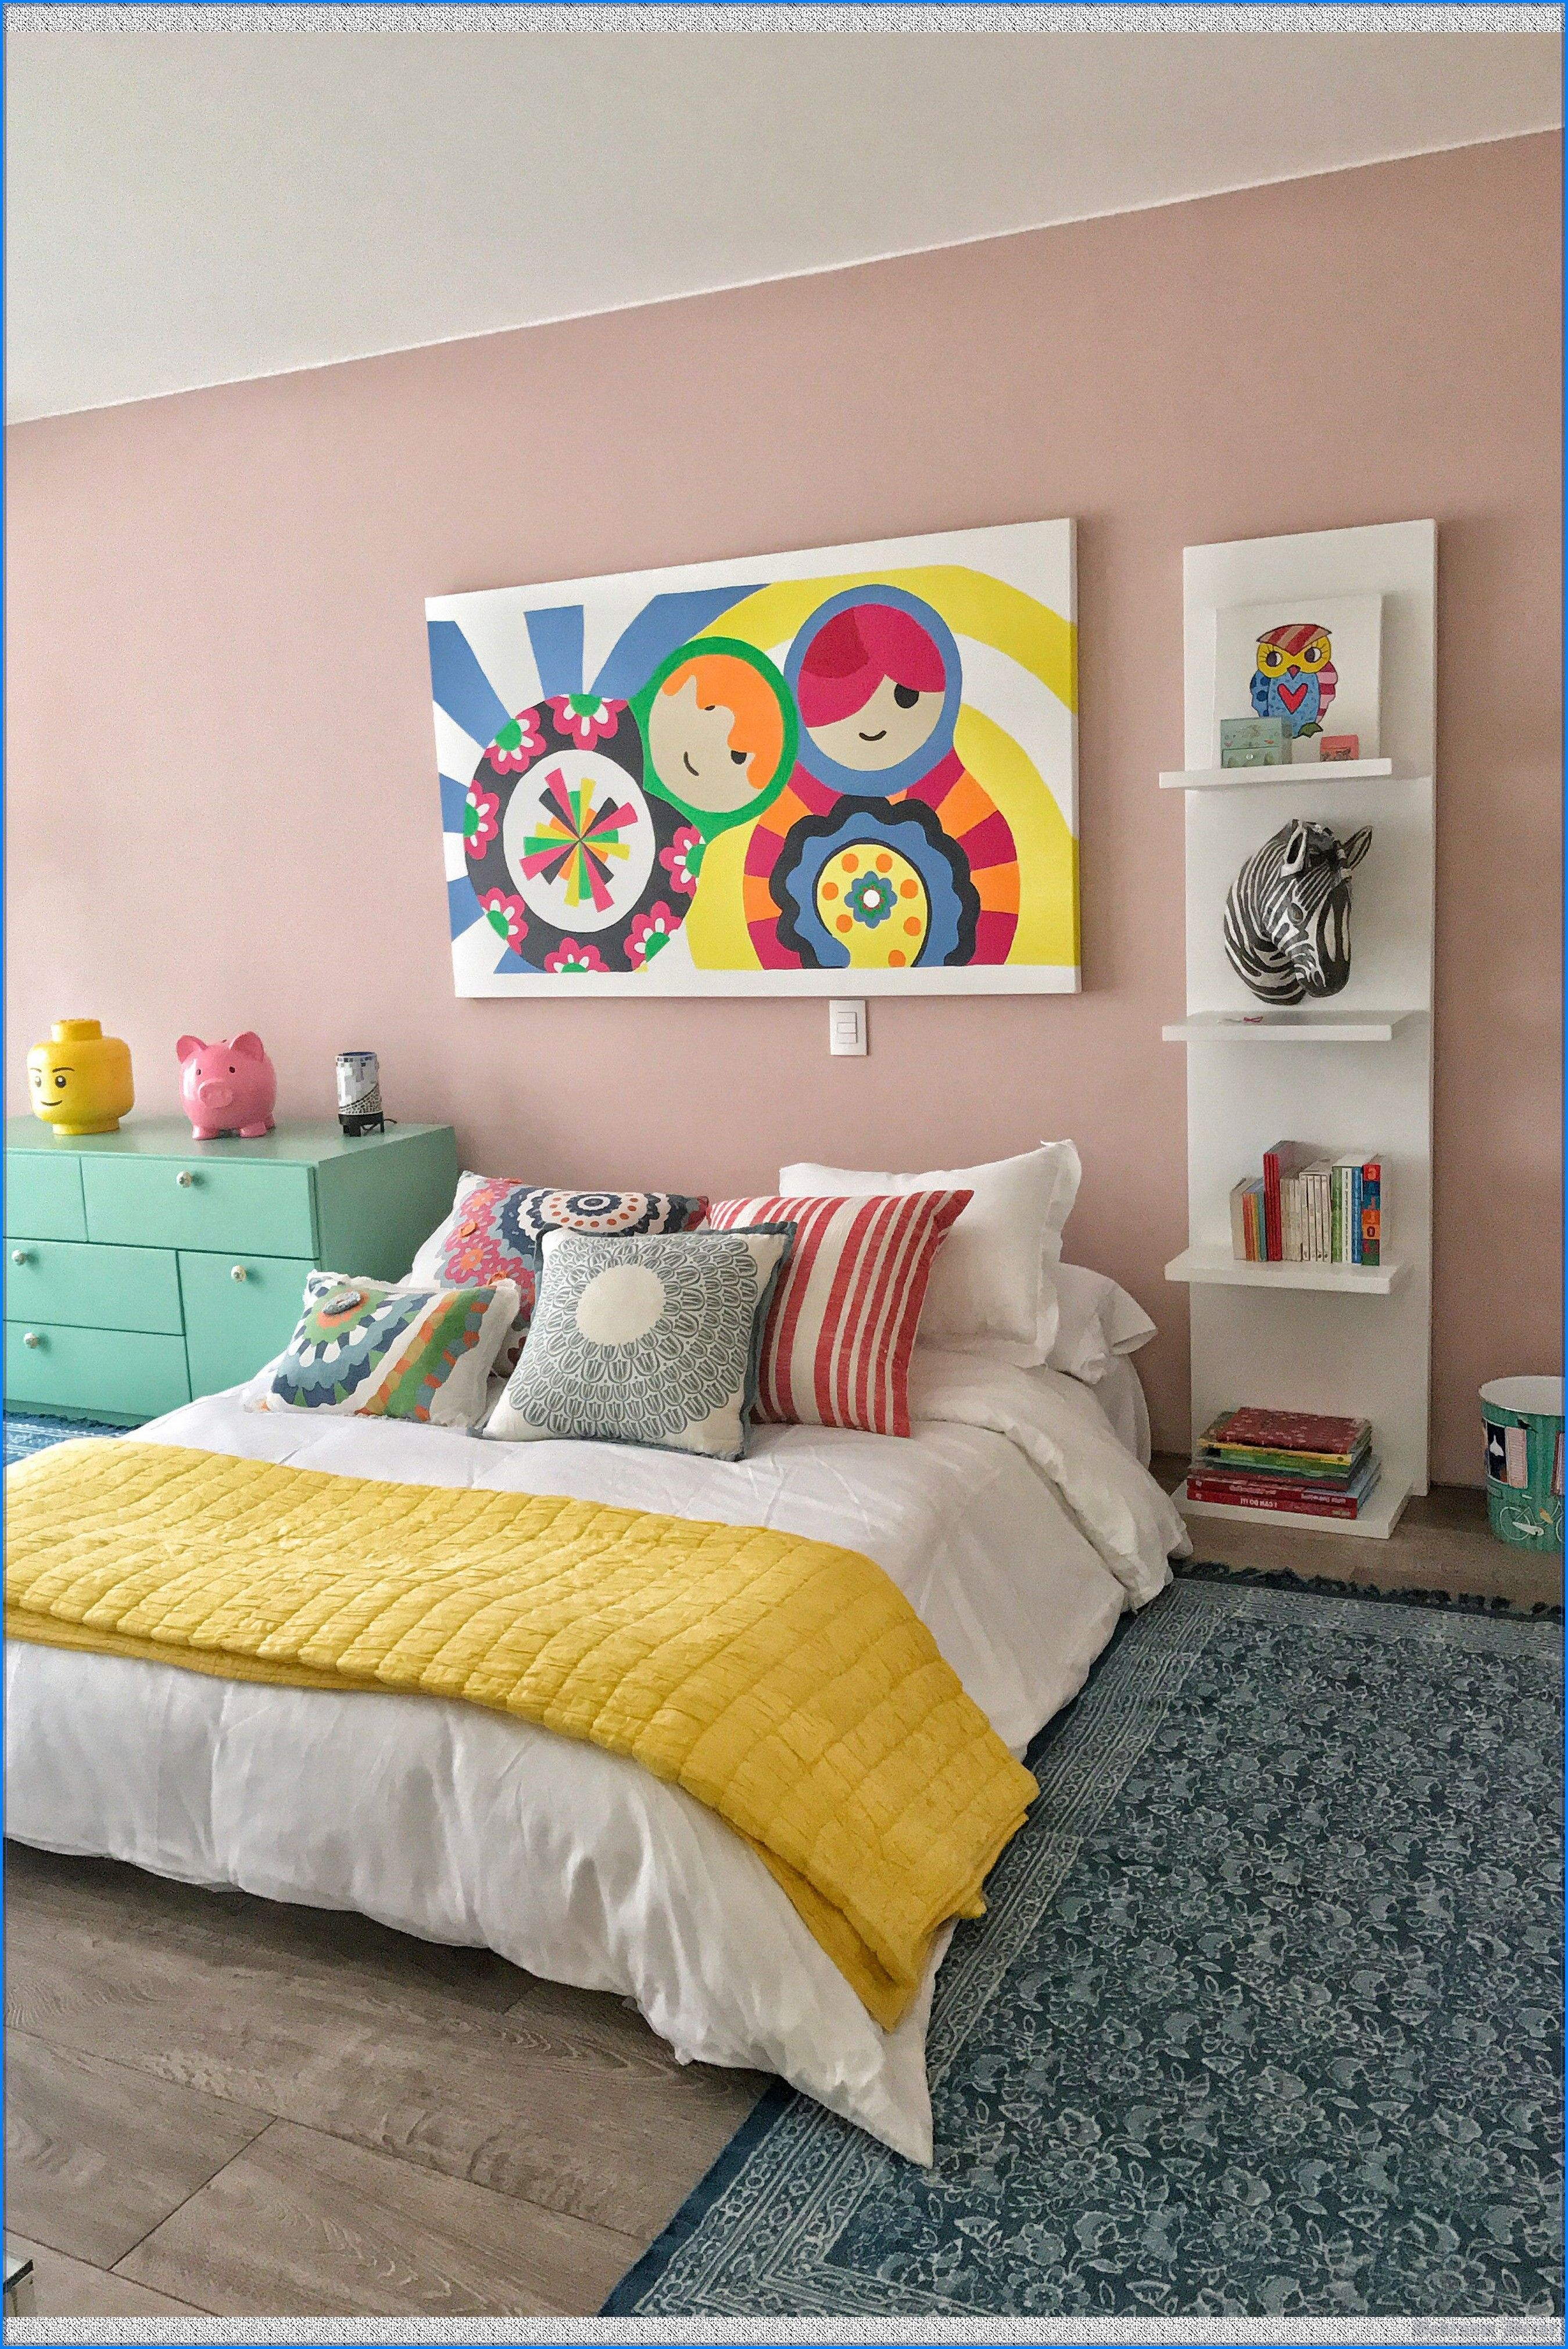 5 Things To Do Immediately About Bedroom Decor